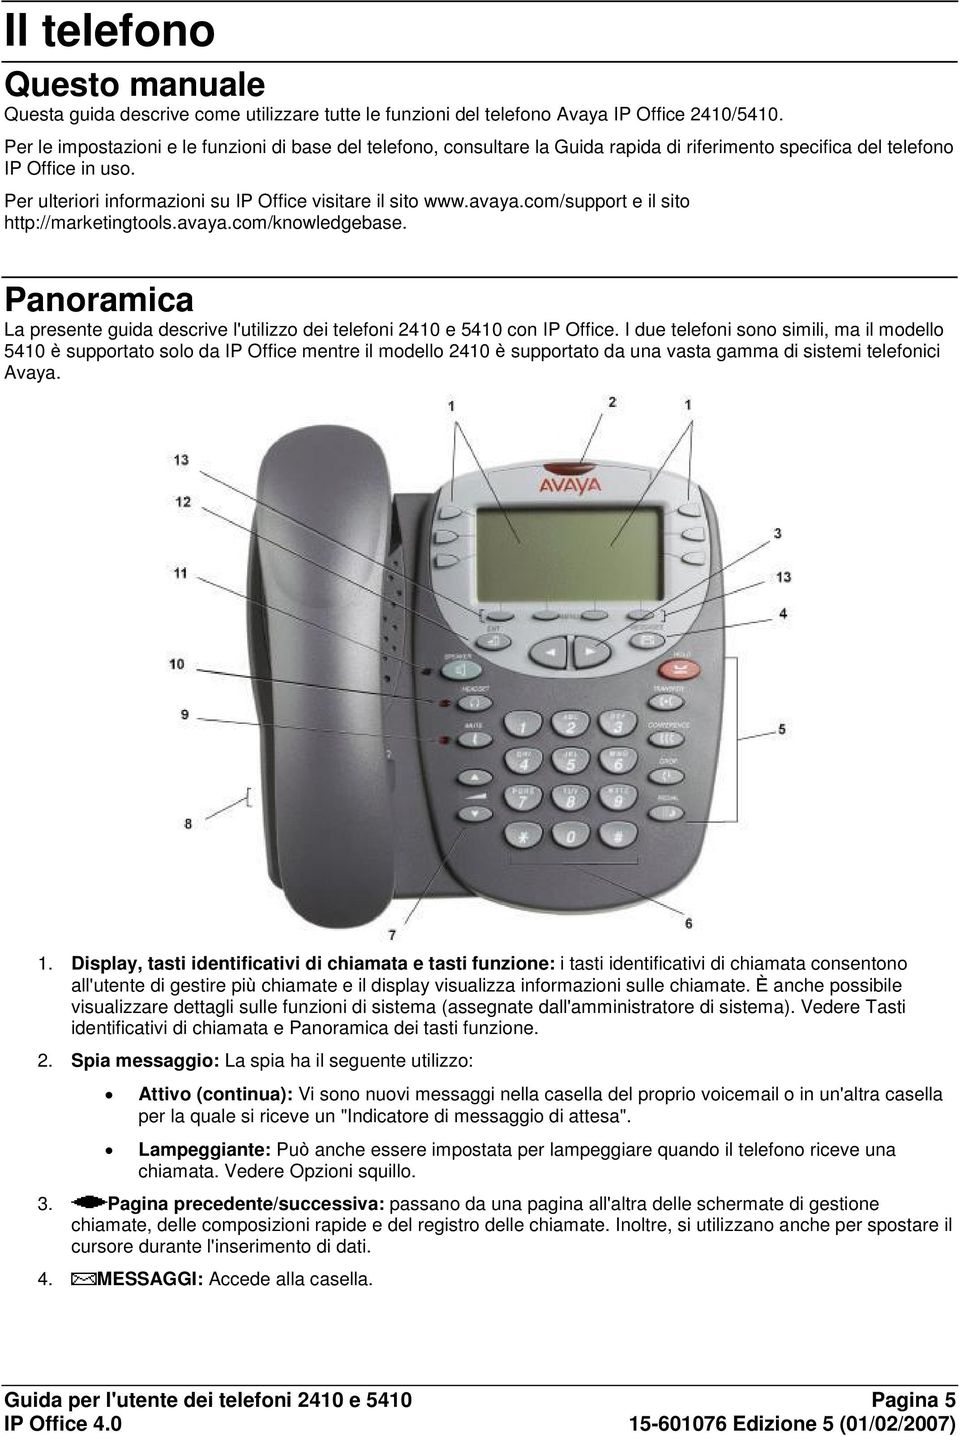 avaya.com/support e il sito http://marketingtools.avaya.com/knowledgebase. Panoramica La presente guida descrive l'utilizzo dei telefoni 2410 e 5410 con IP Office.